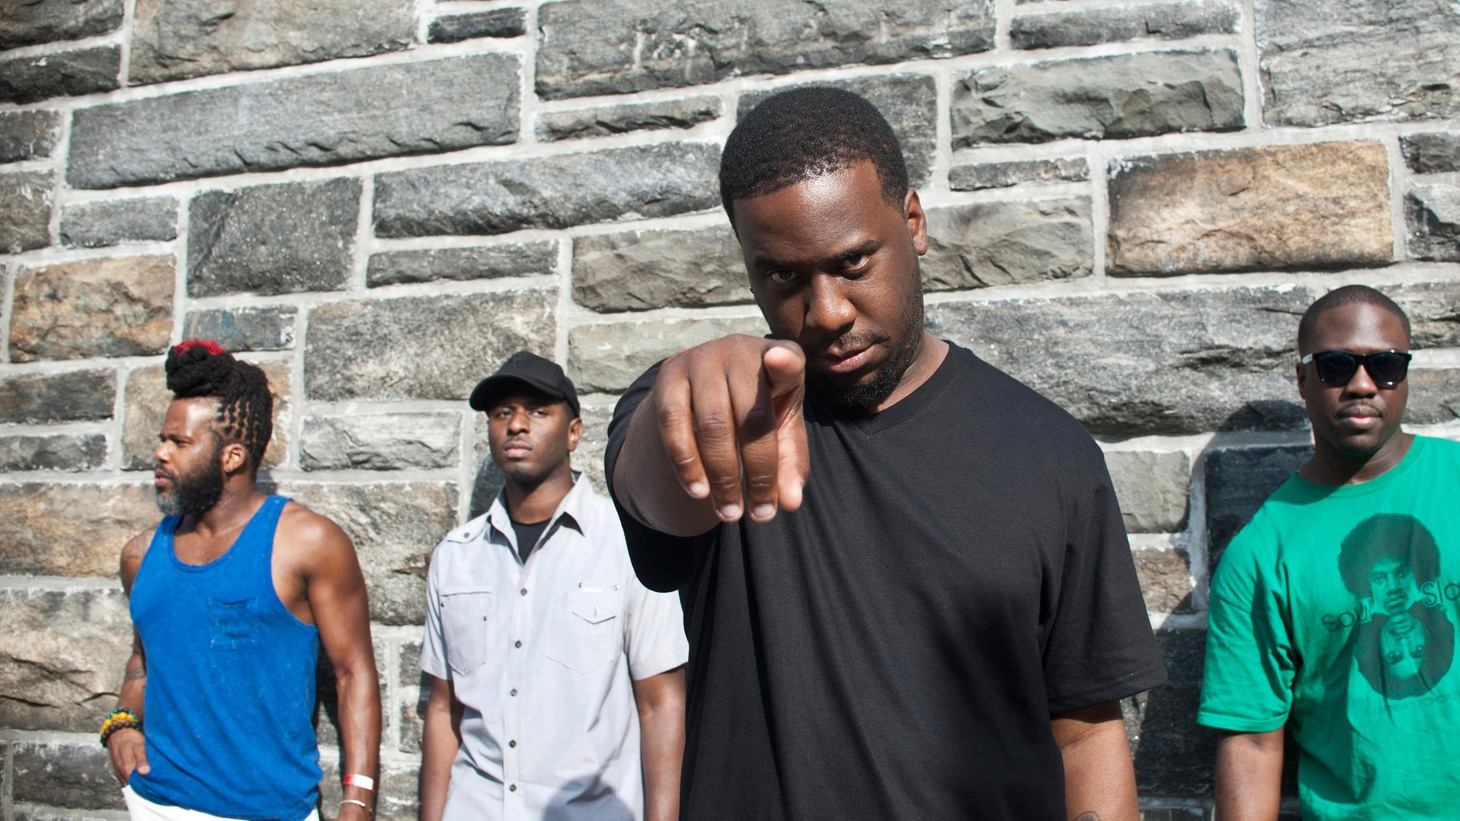 Robert Glasper has made numerous traditional jazz recordings with his trio, but his latest album sees him widening his perspective...